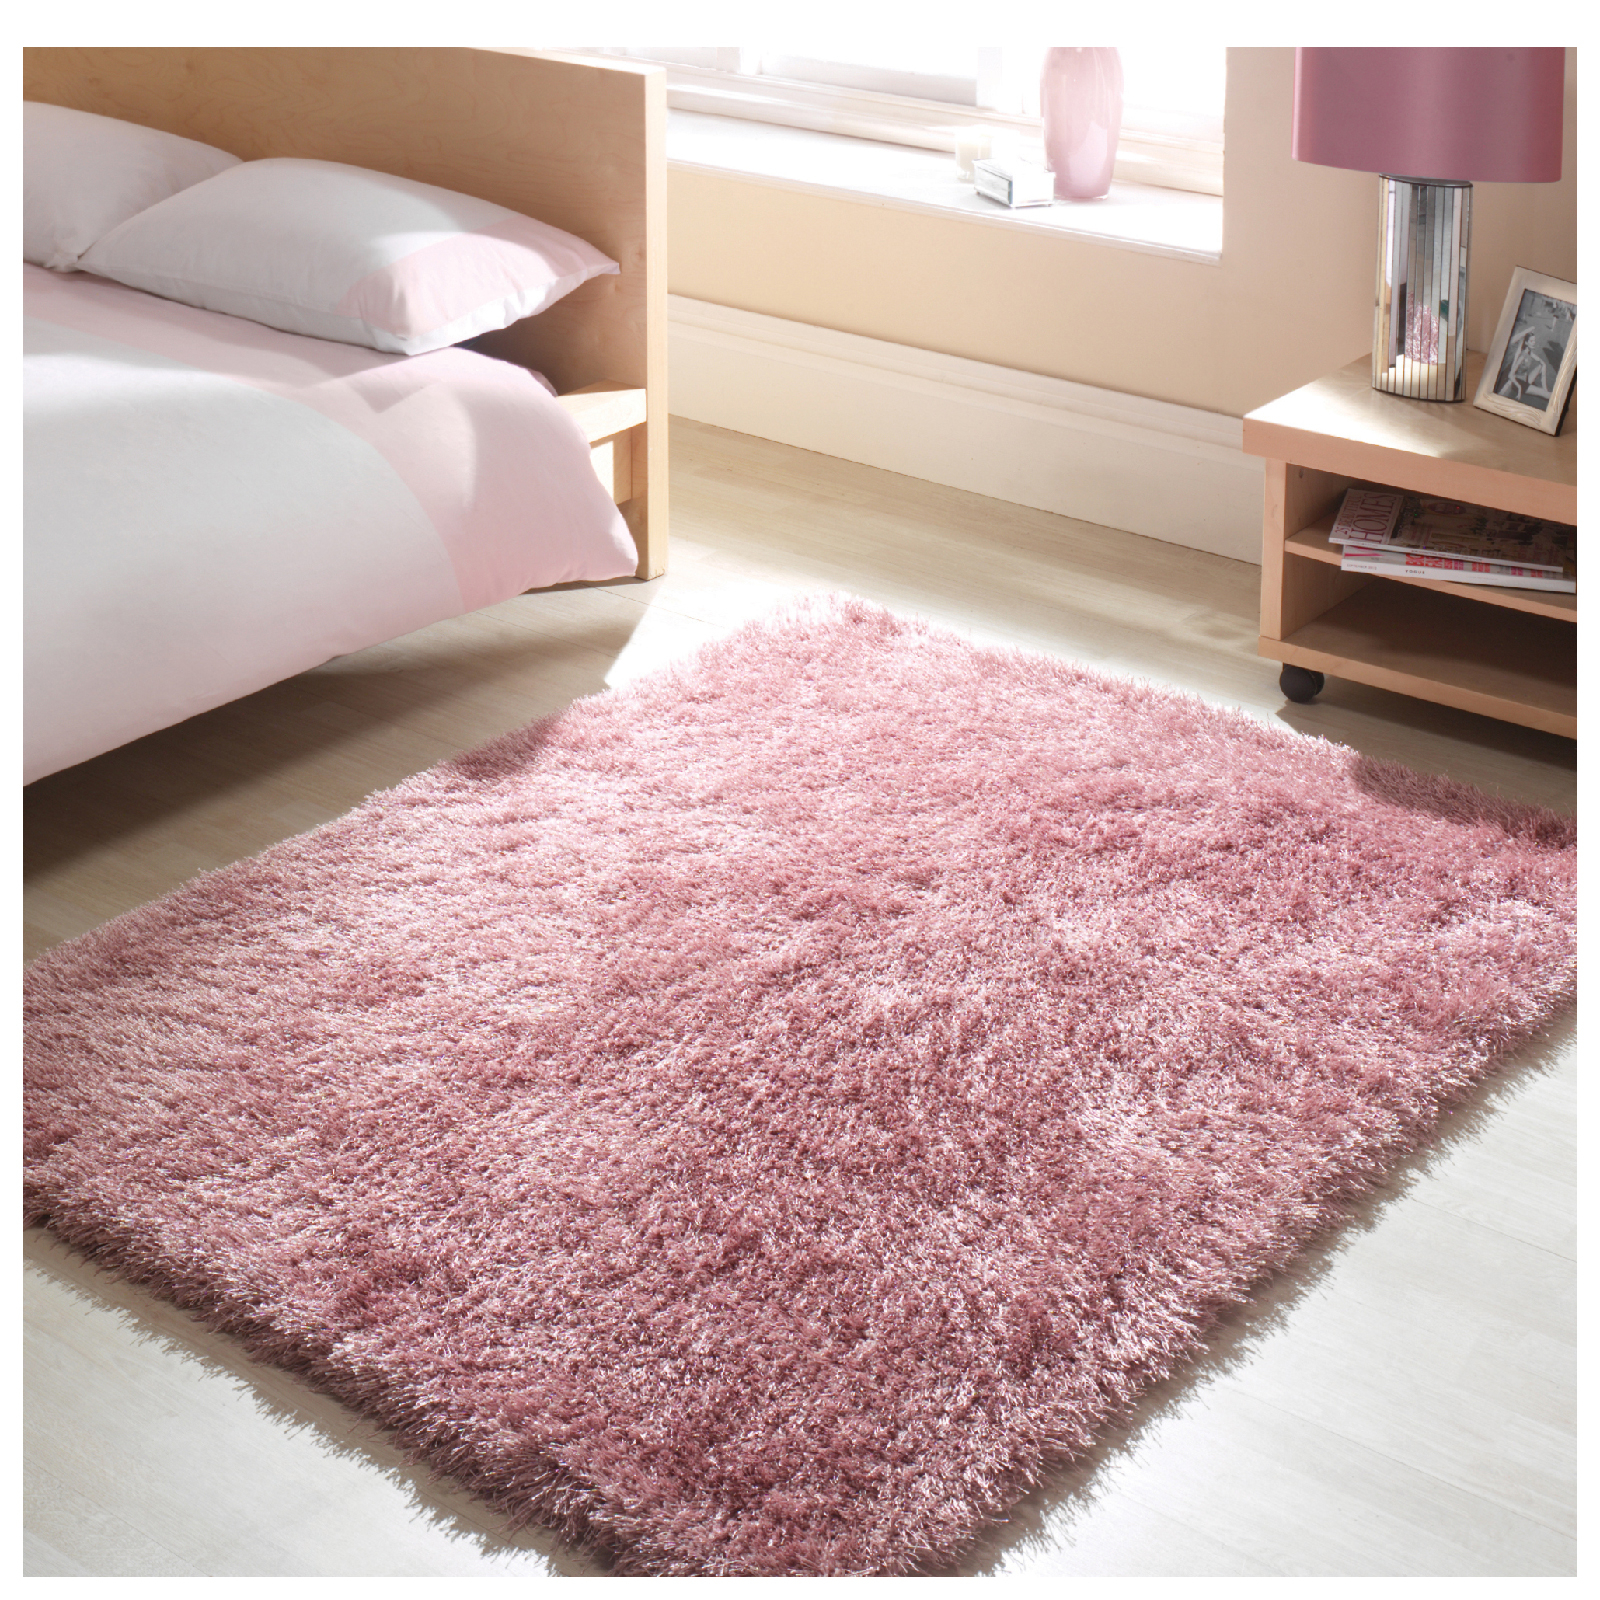 Flair Santa Cruz Rug - Summertime Crushed Strawberry